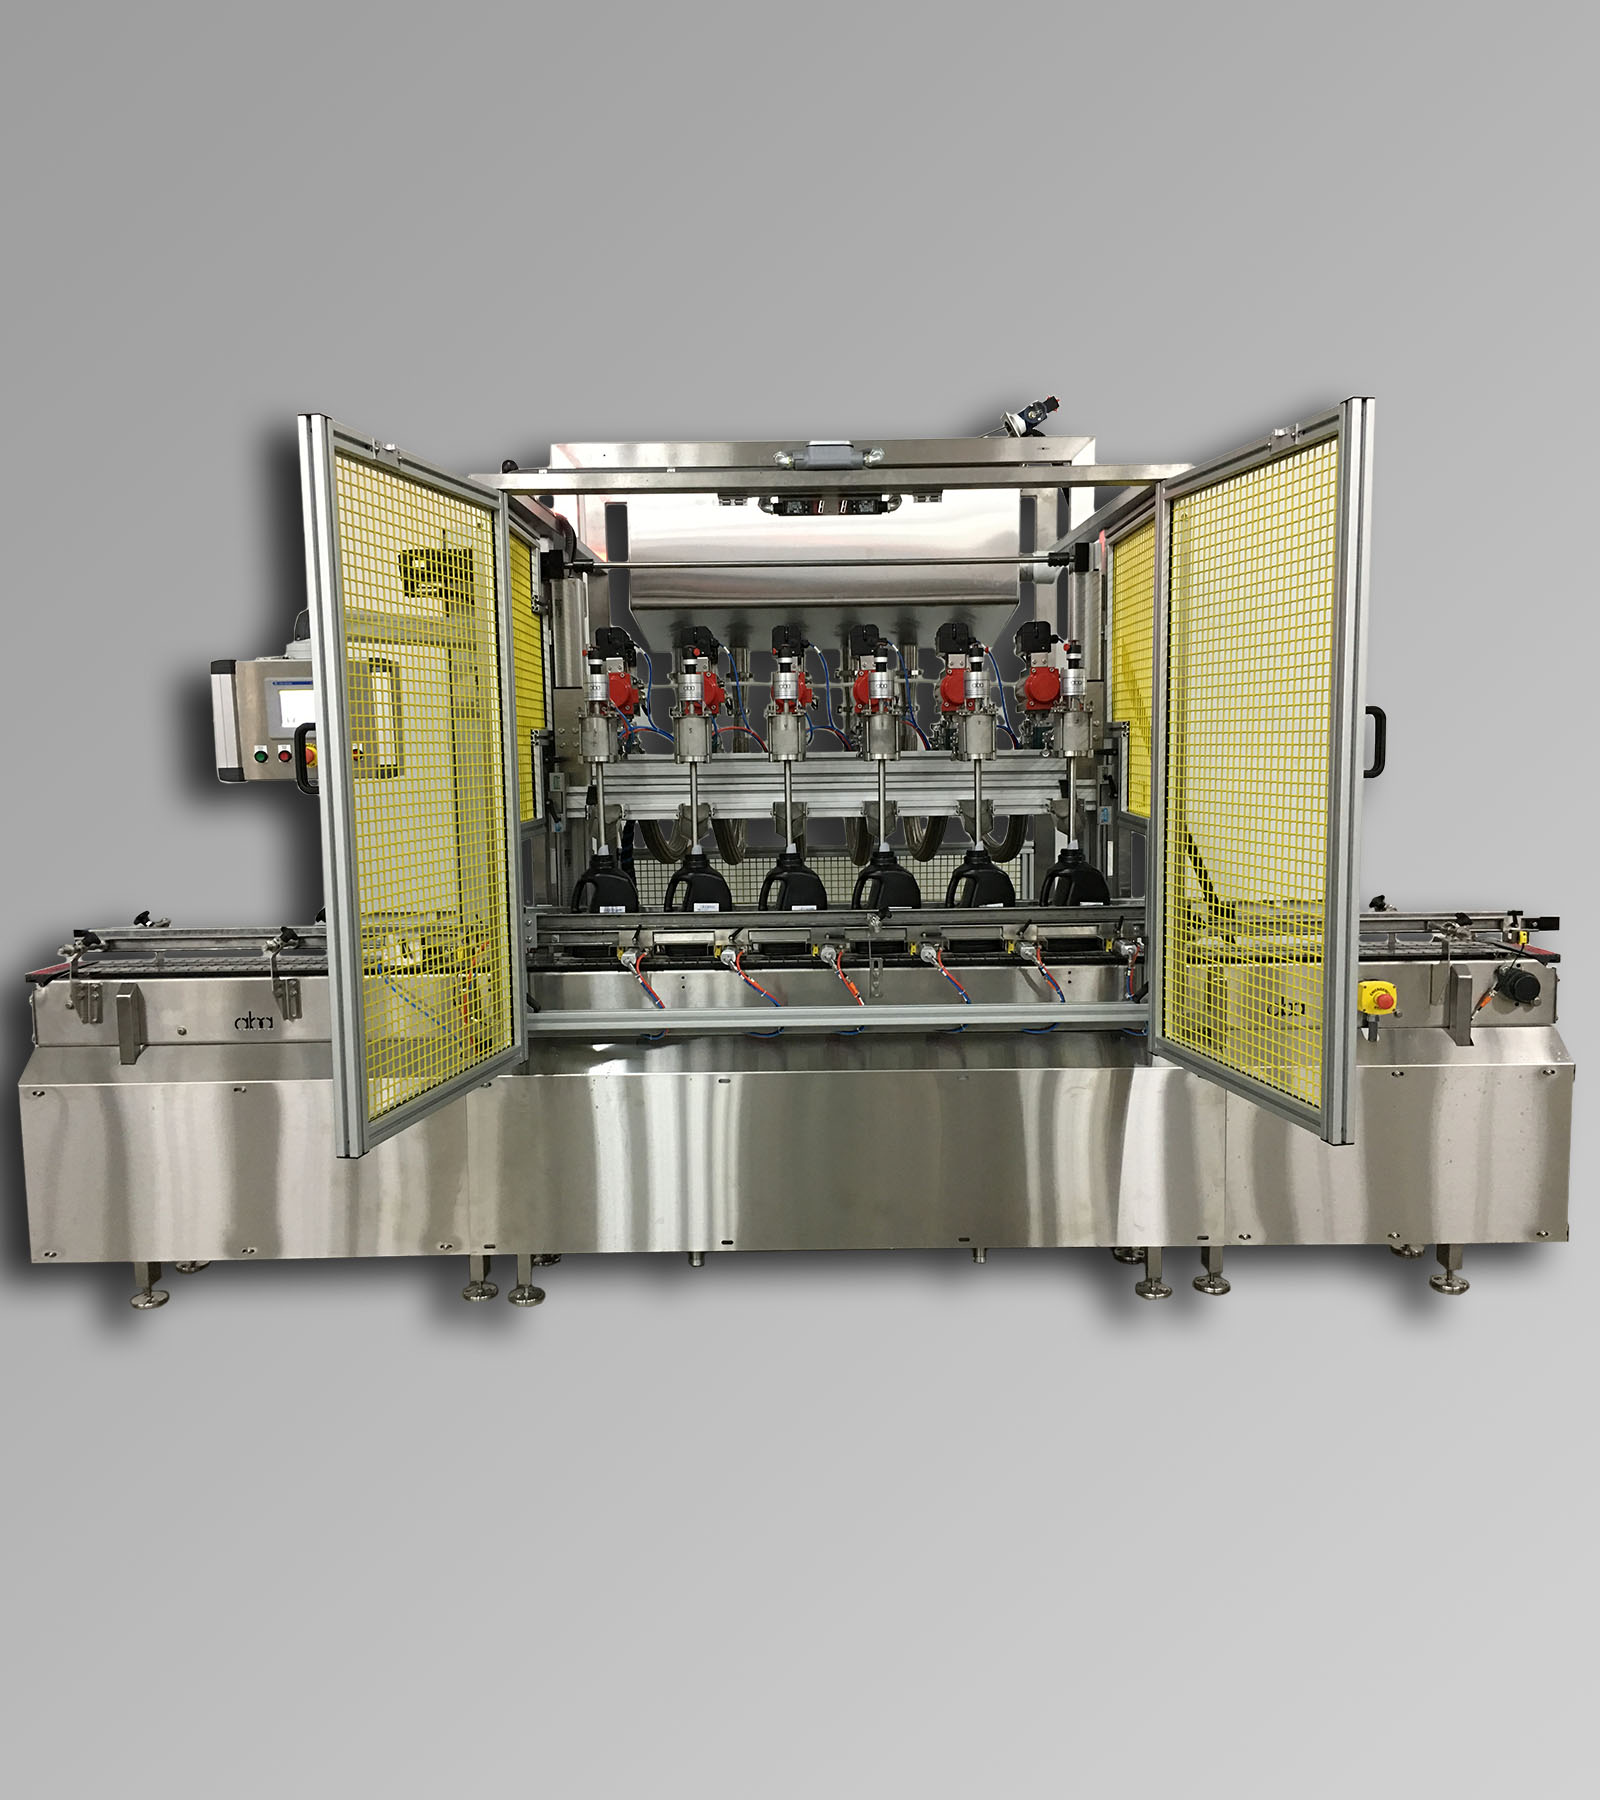 ABA-M394 - Top & Bottom Fill, Net Weight, 6 Head Filling Machine Shown Bottom Filling